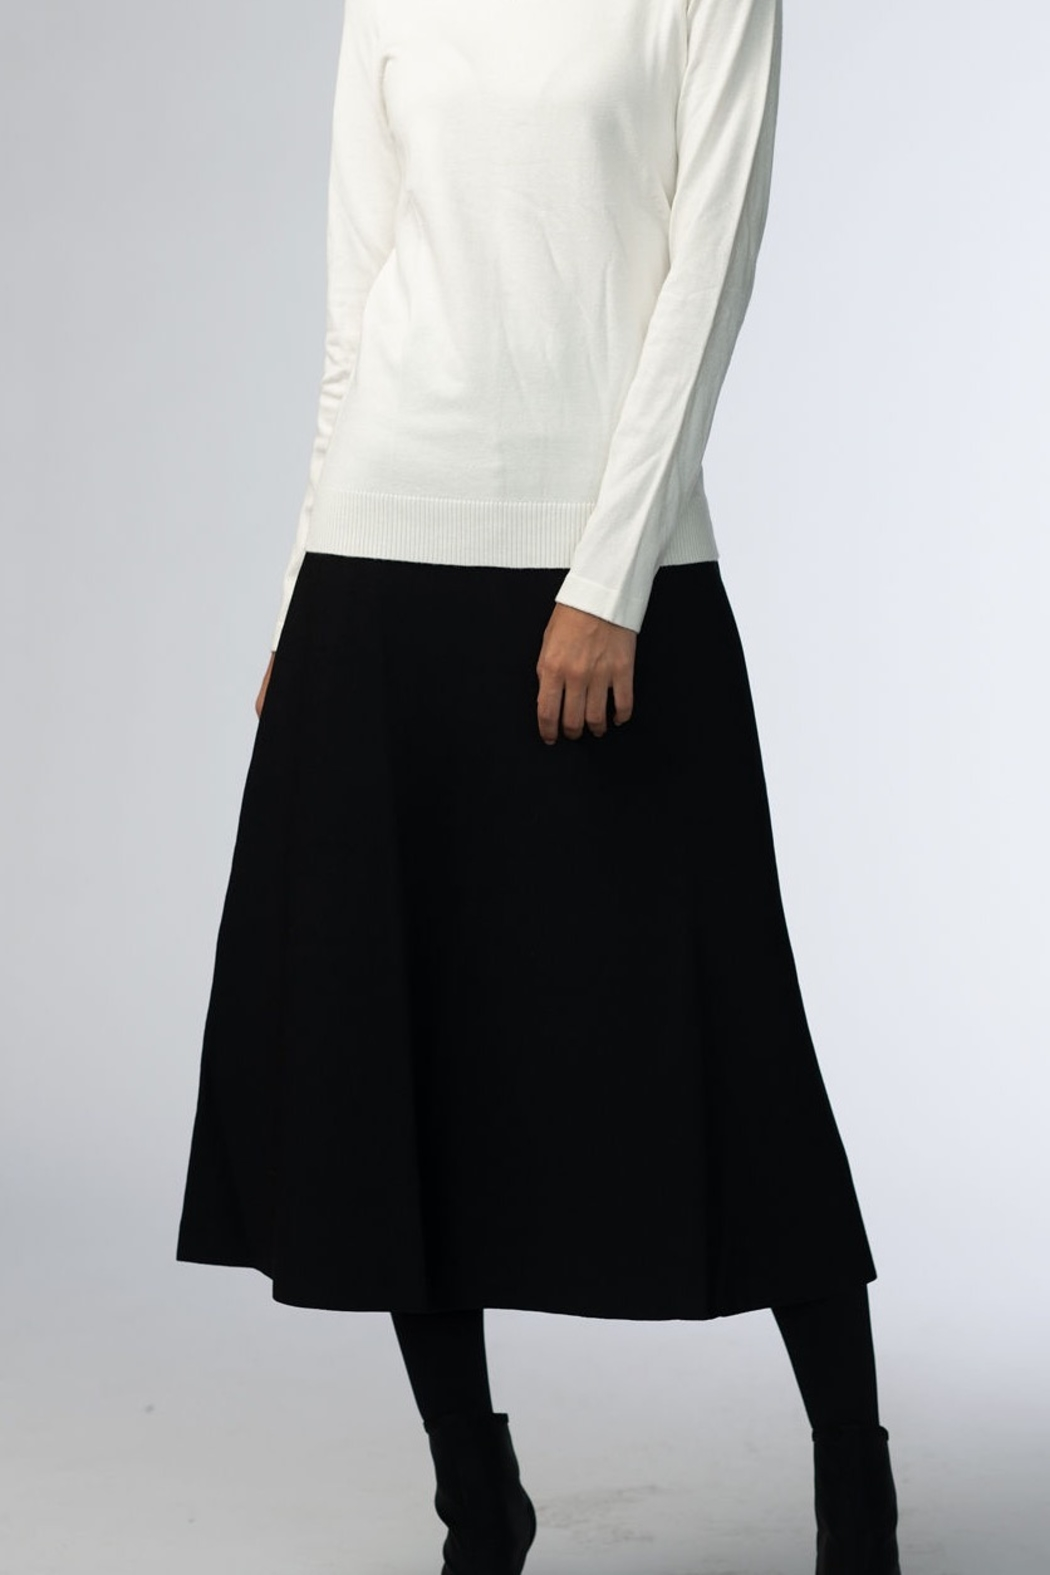 Meli by FAME 3 PANEL 25 INCH SKIRT - Main Image